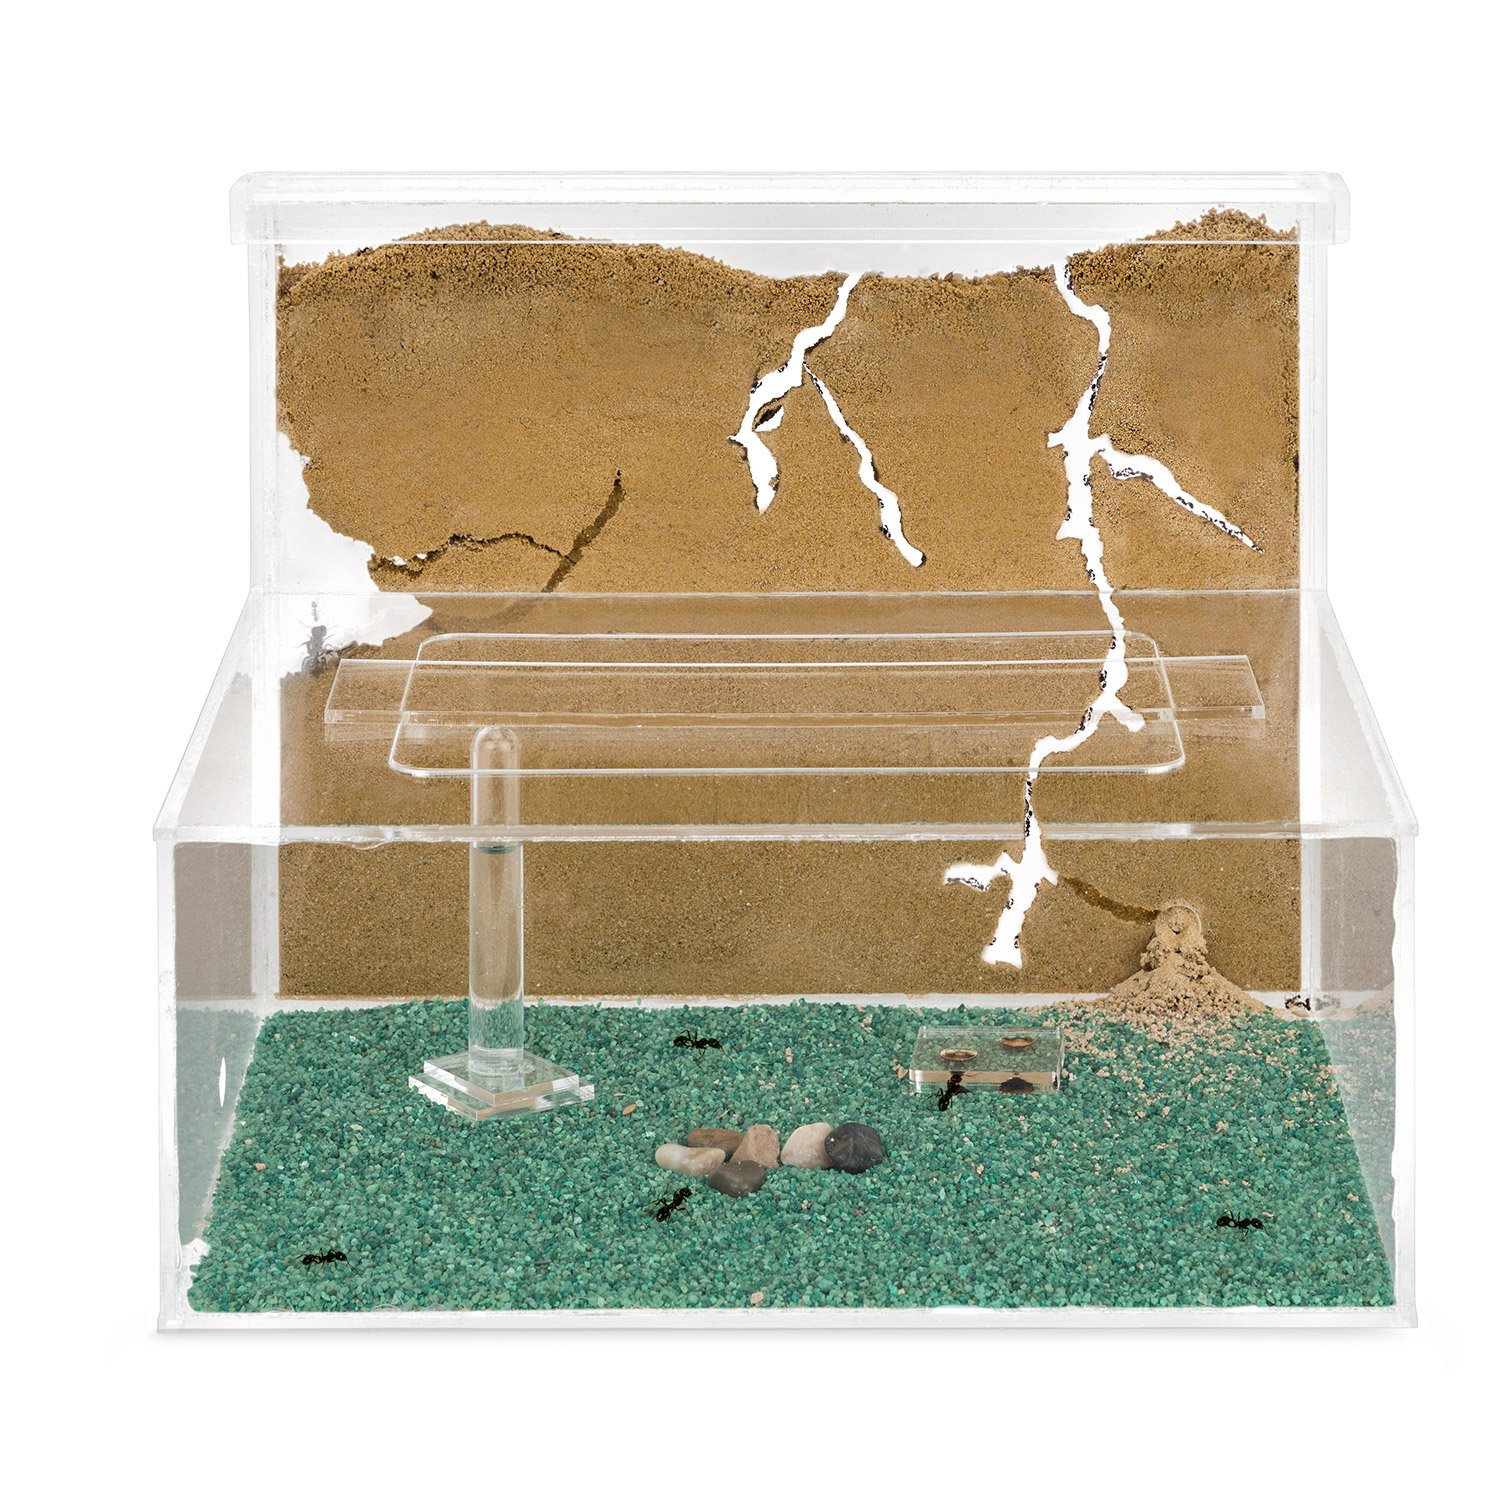 Sand Ant Farm L (Formicarium (Anthill, Formicarium, Educational, Ants)